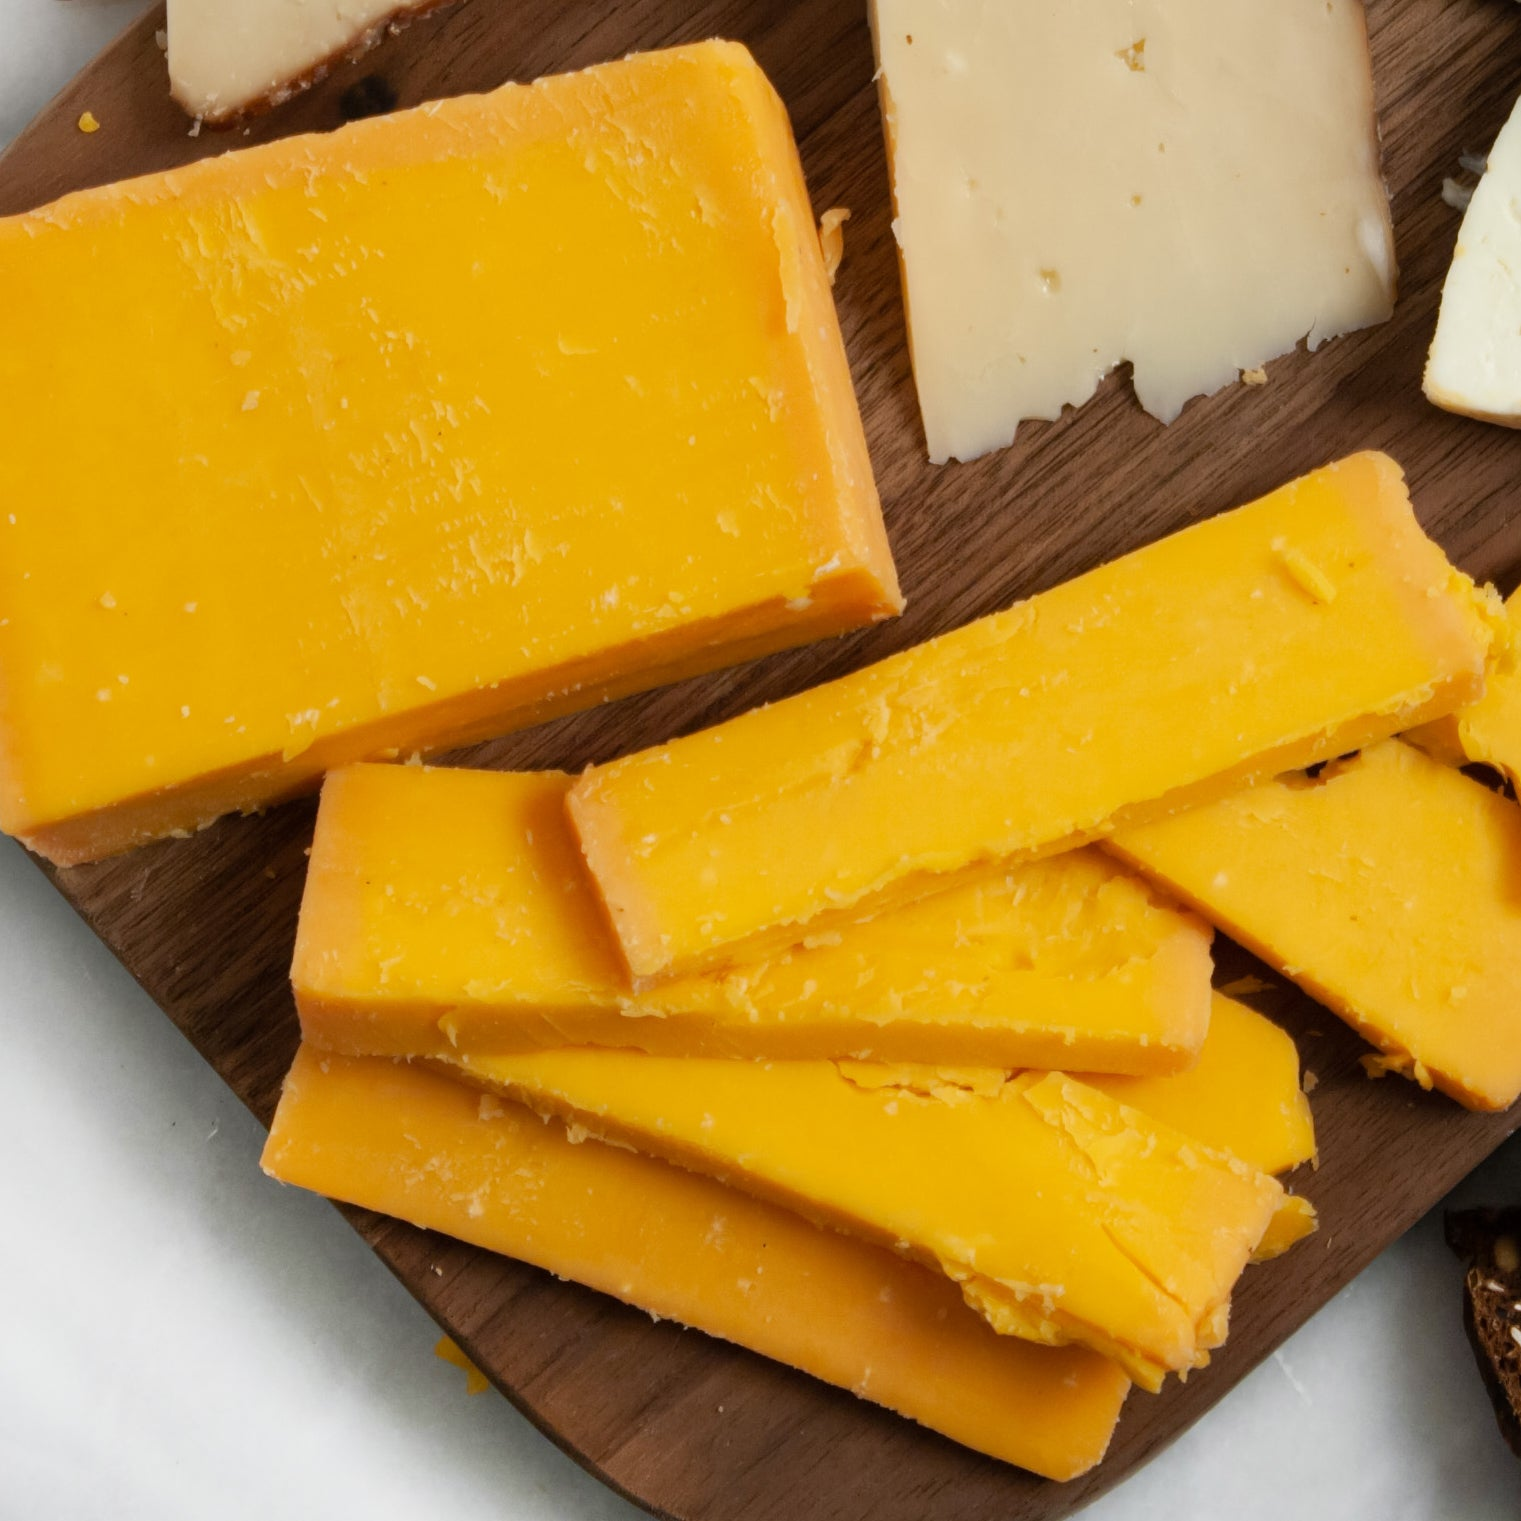 Widmer's Six Year Reserve Cheddar Cheese - igourmet